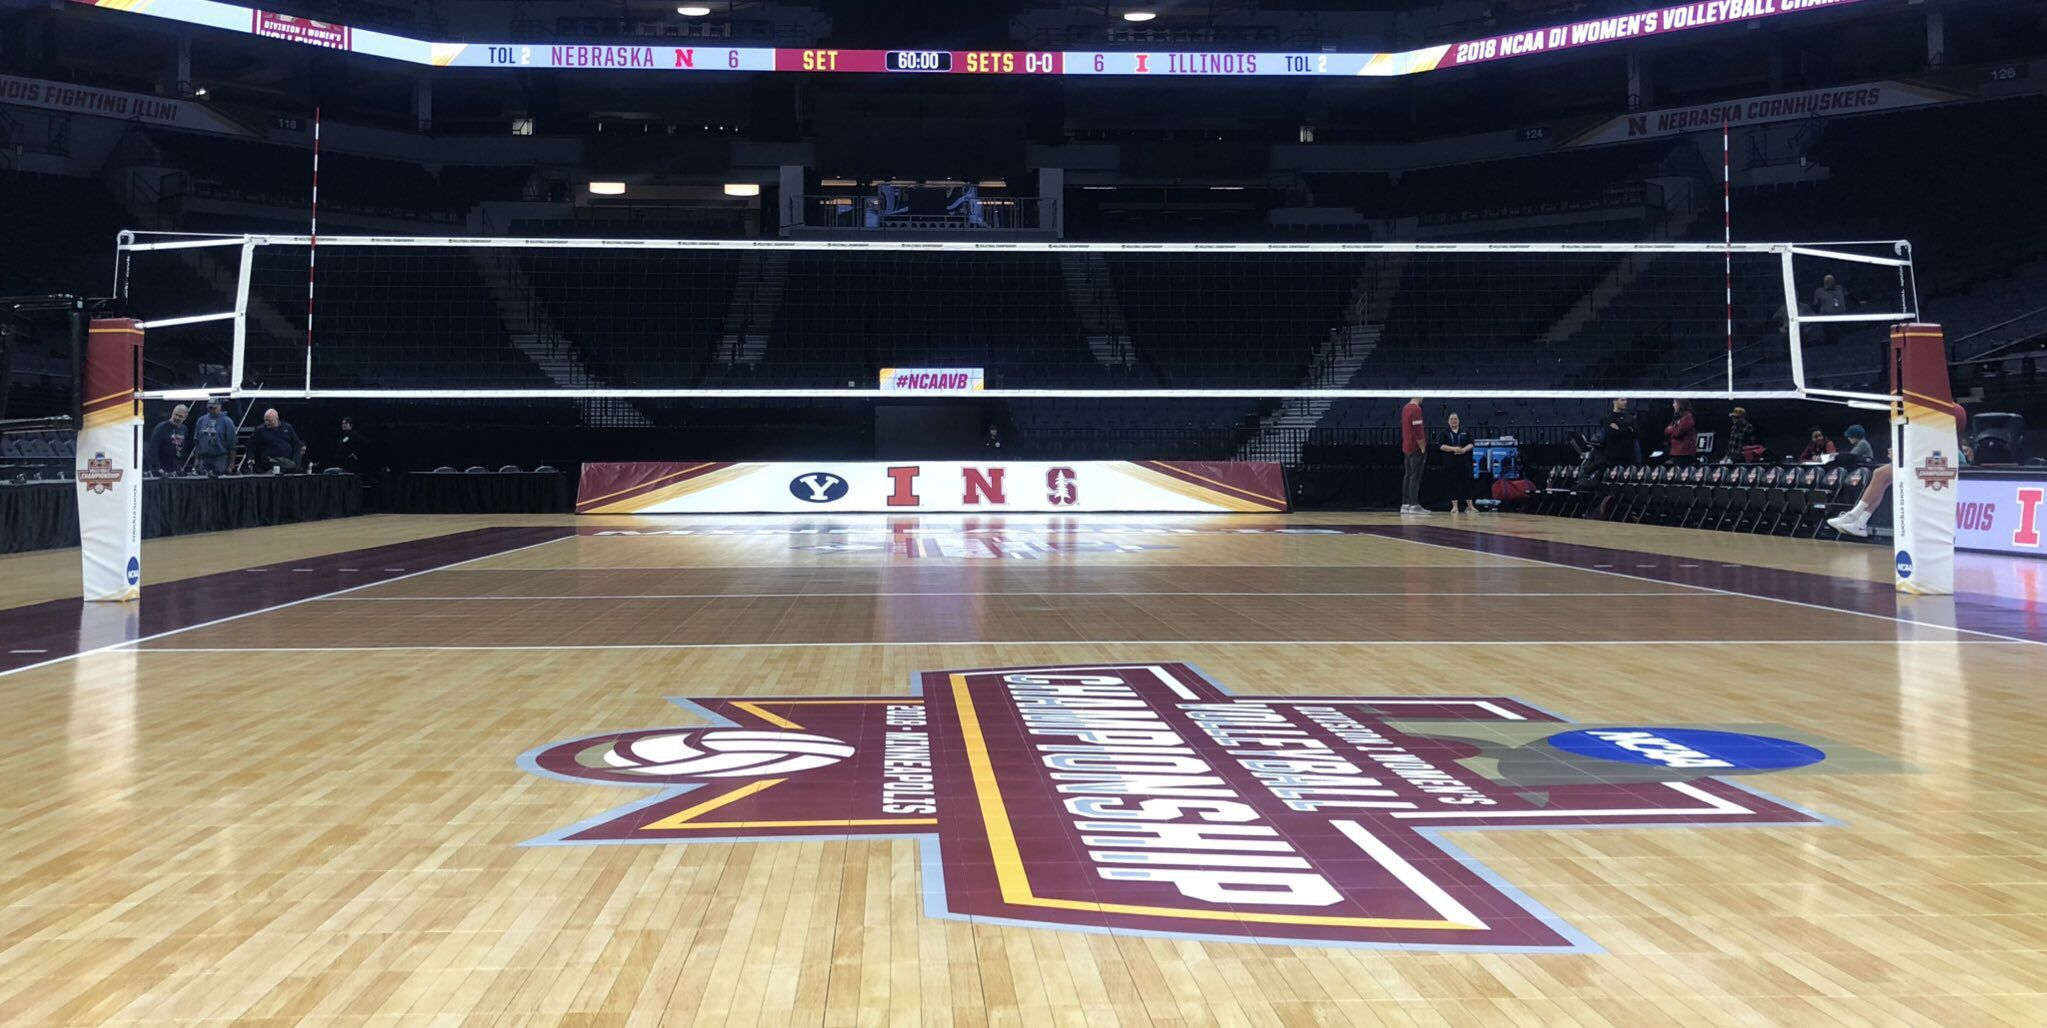 2018 Ncaa Volleyball Championship Volleyball Ncaa Basketball Court